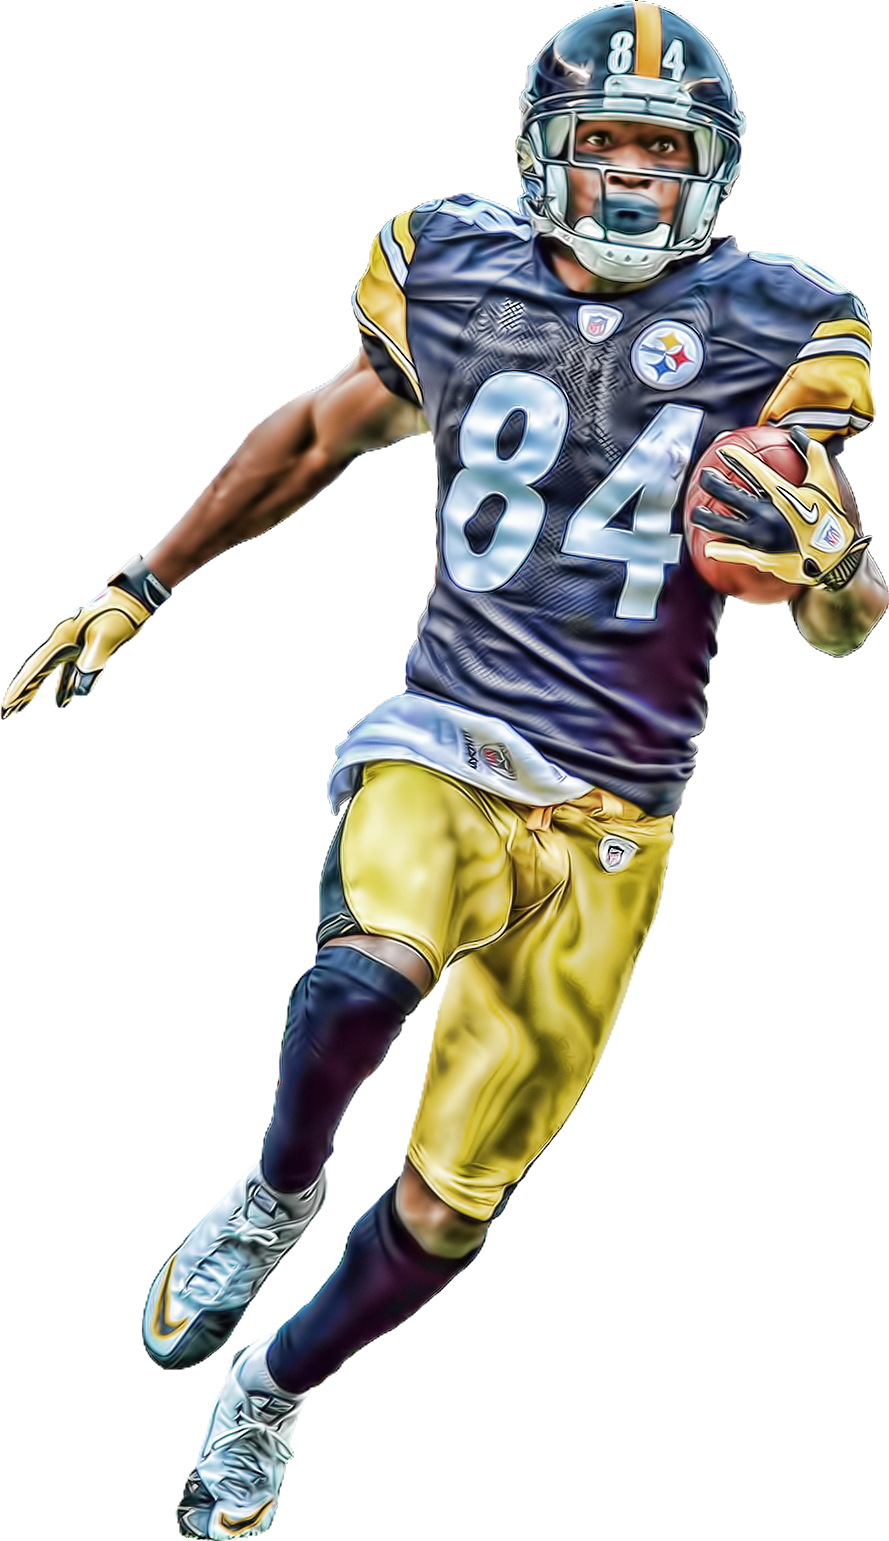 American Football Player Png Image American Football Players Football Players American Football